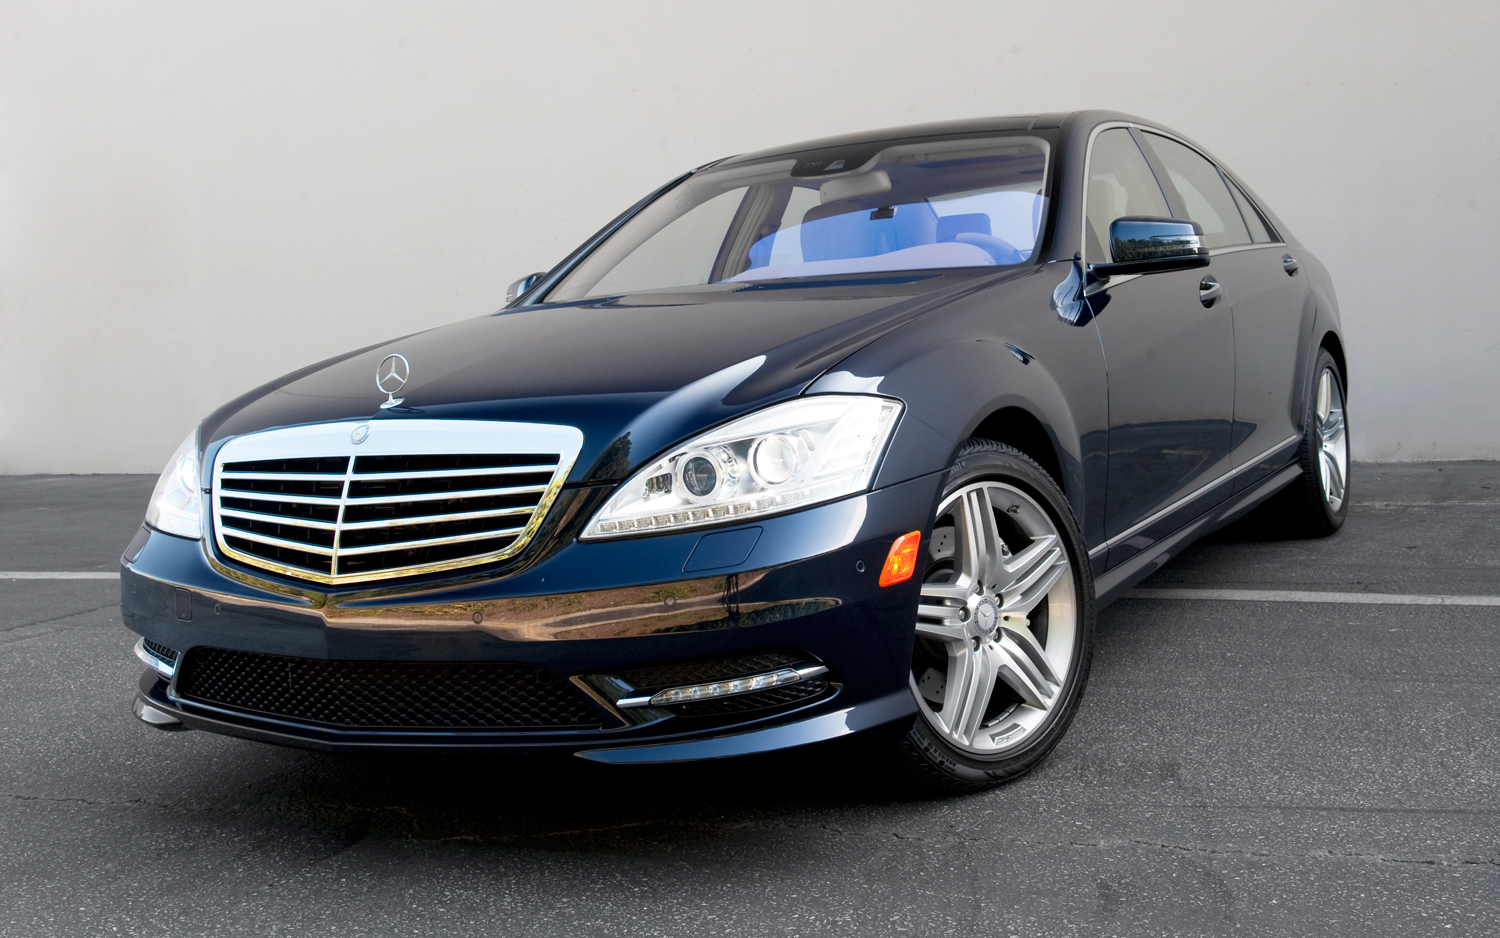 Mercedes-benz s400 photo - 3